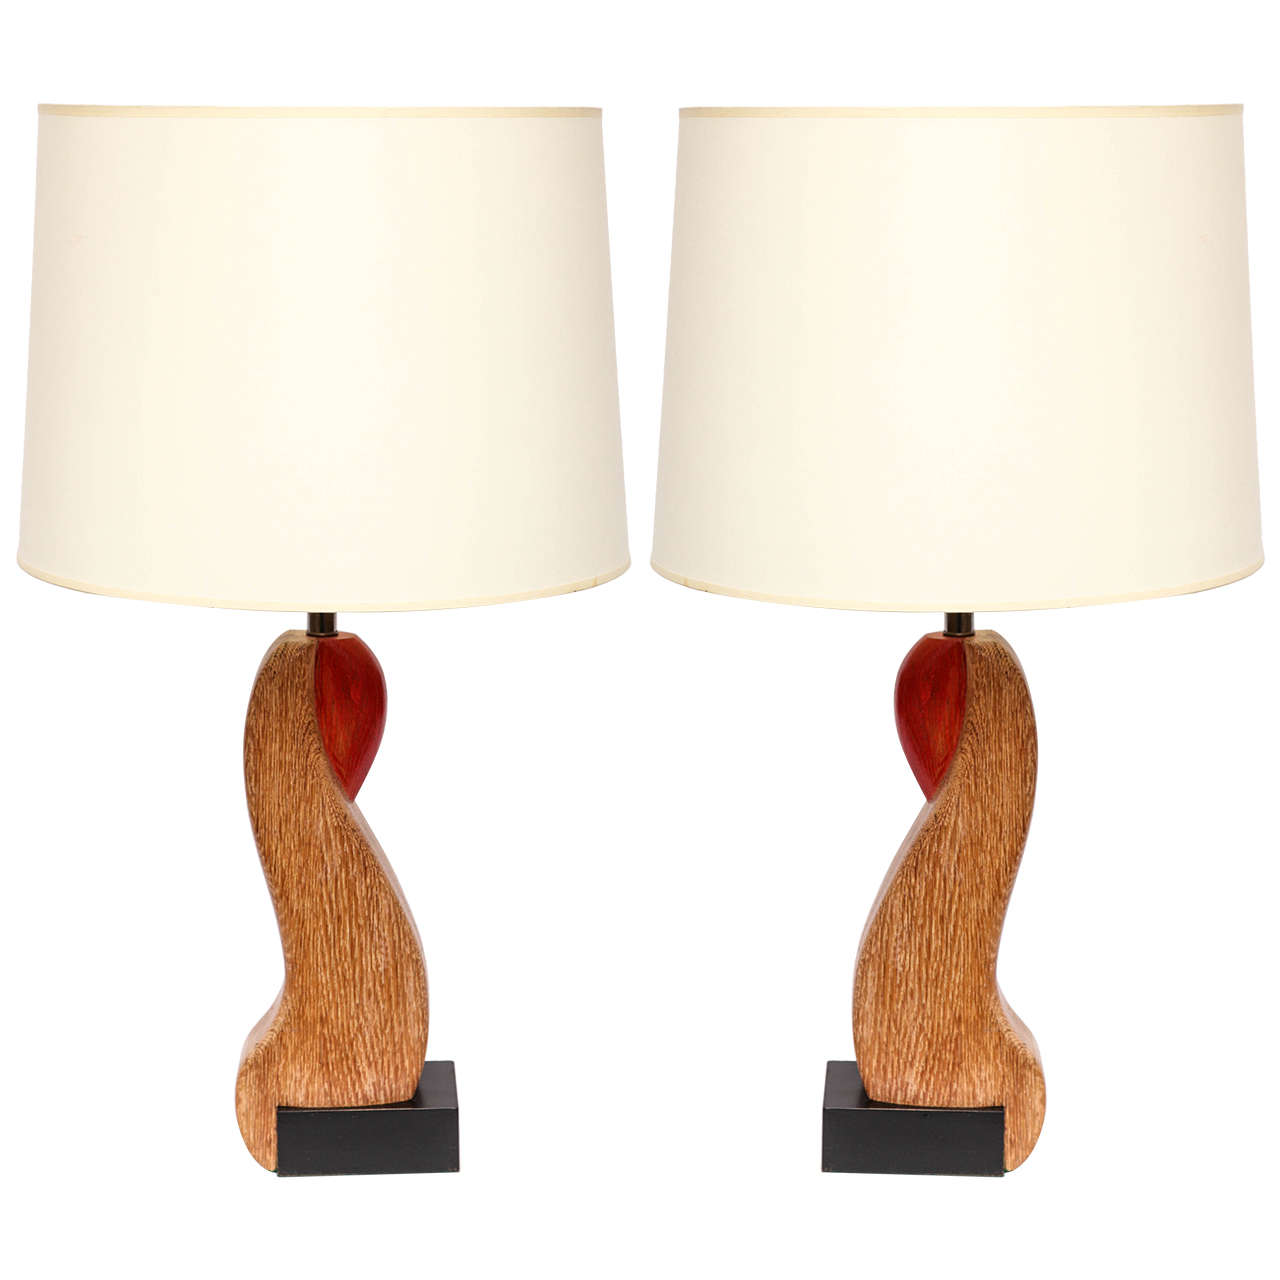 Pair of 1940s Sculptural Table Lamps